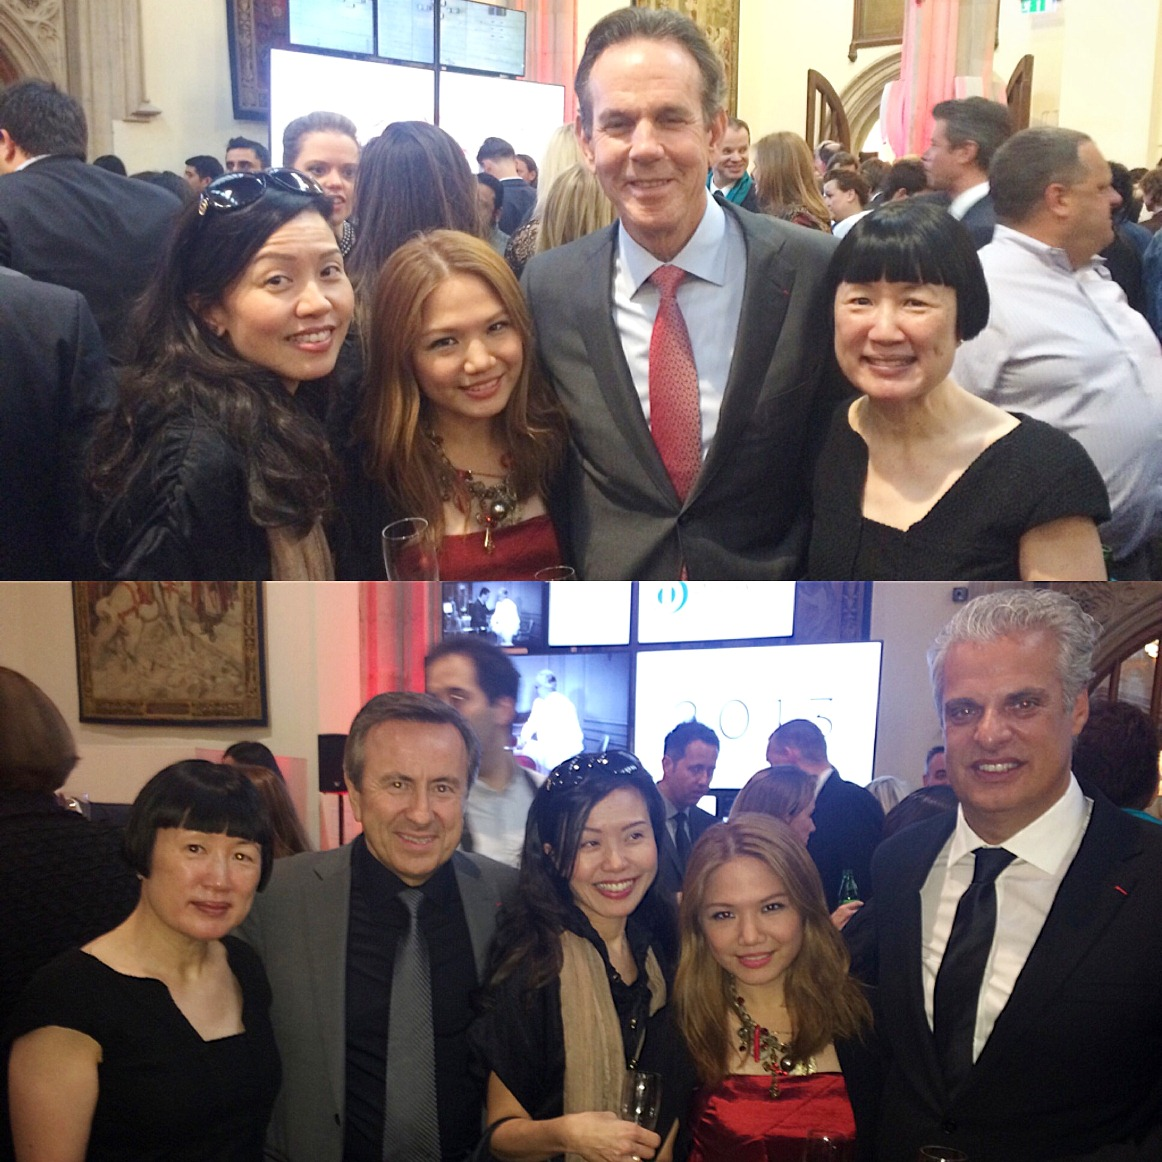 The World's 50 Best Restaturants Awards Ceremony at The Guildhall London- Evelyn Chen, Cheryl Tiu. Thomas Keller, Susan Jung, Daniel Boulud, Eric Ripert